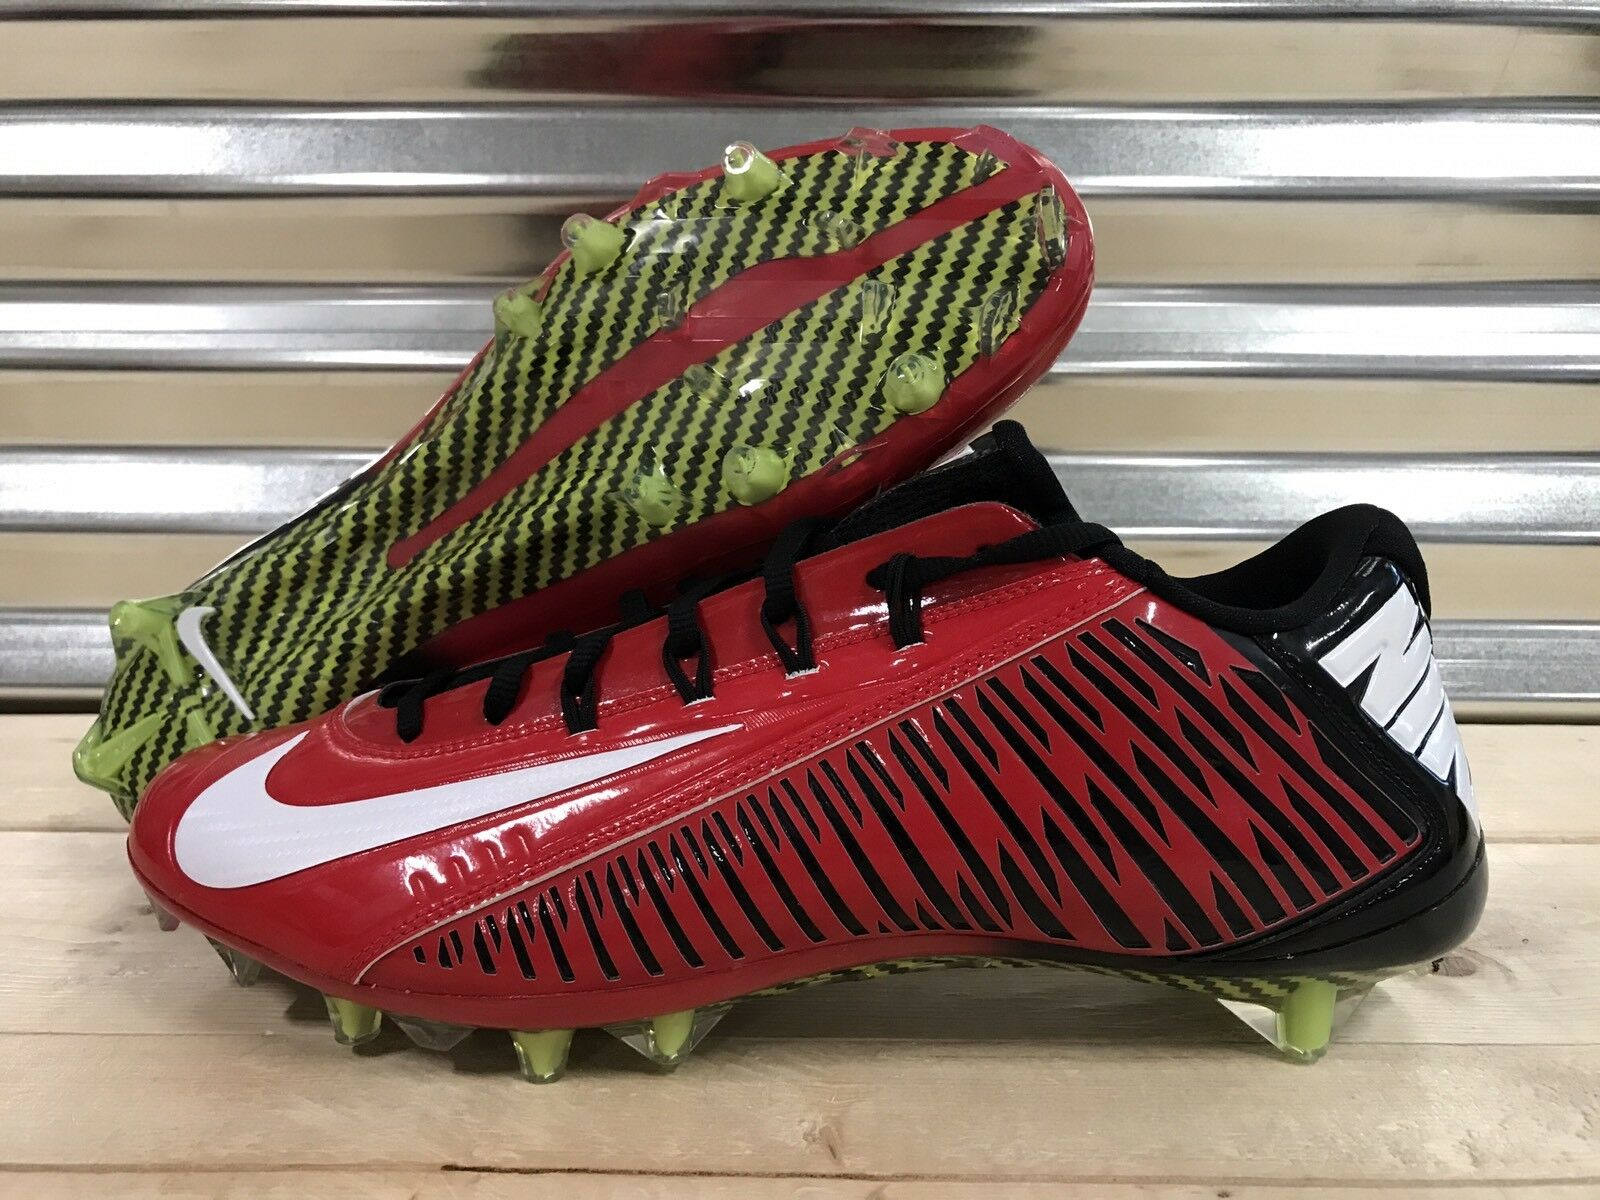 Nike Vapor Carbon Elite TD NFL Football Cleats Red Black Falcons Price reduction Wild casual shoes